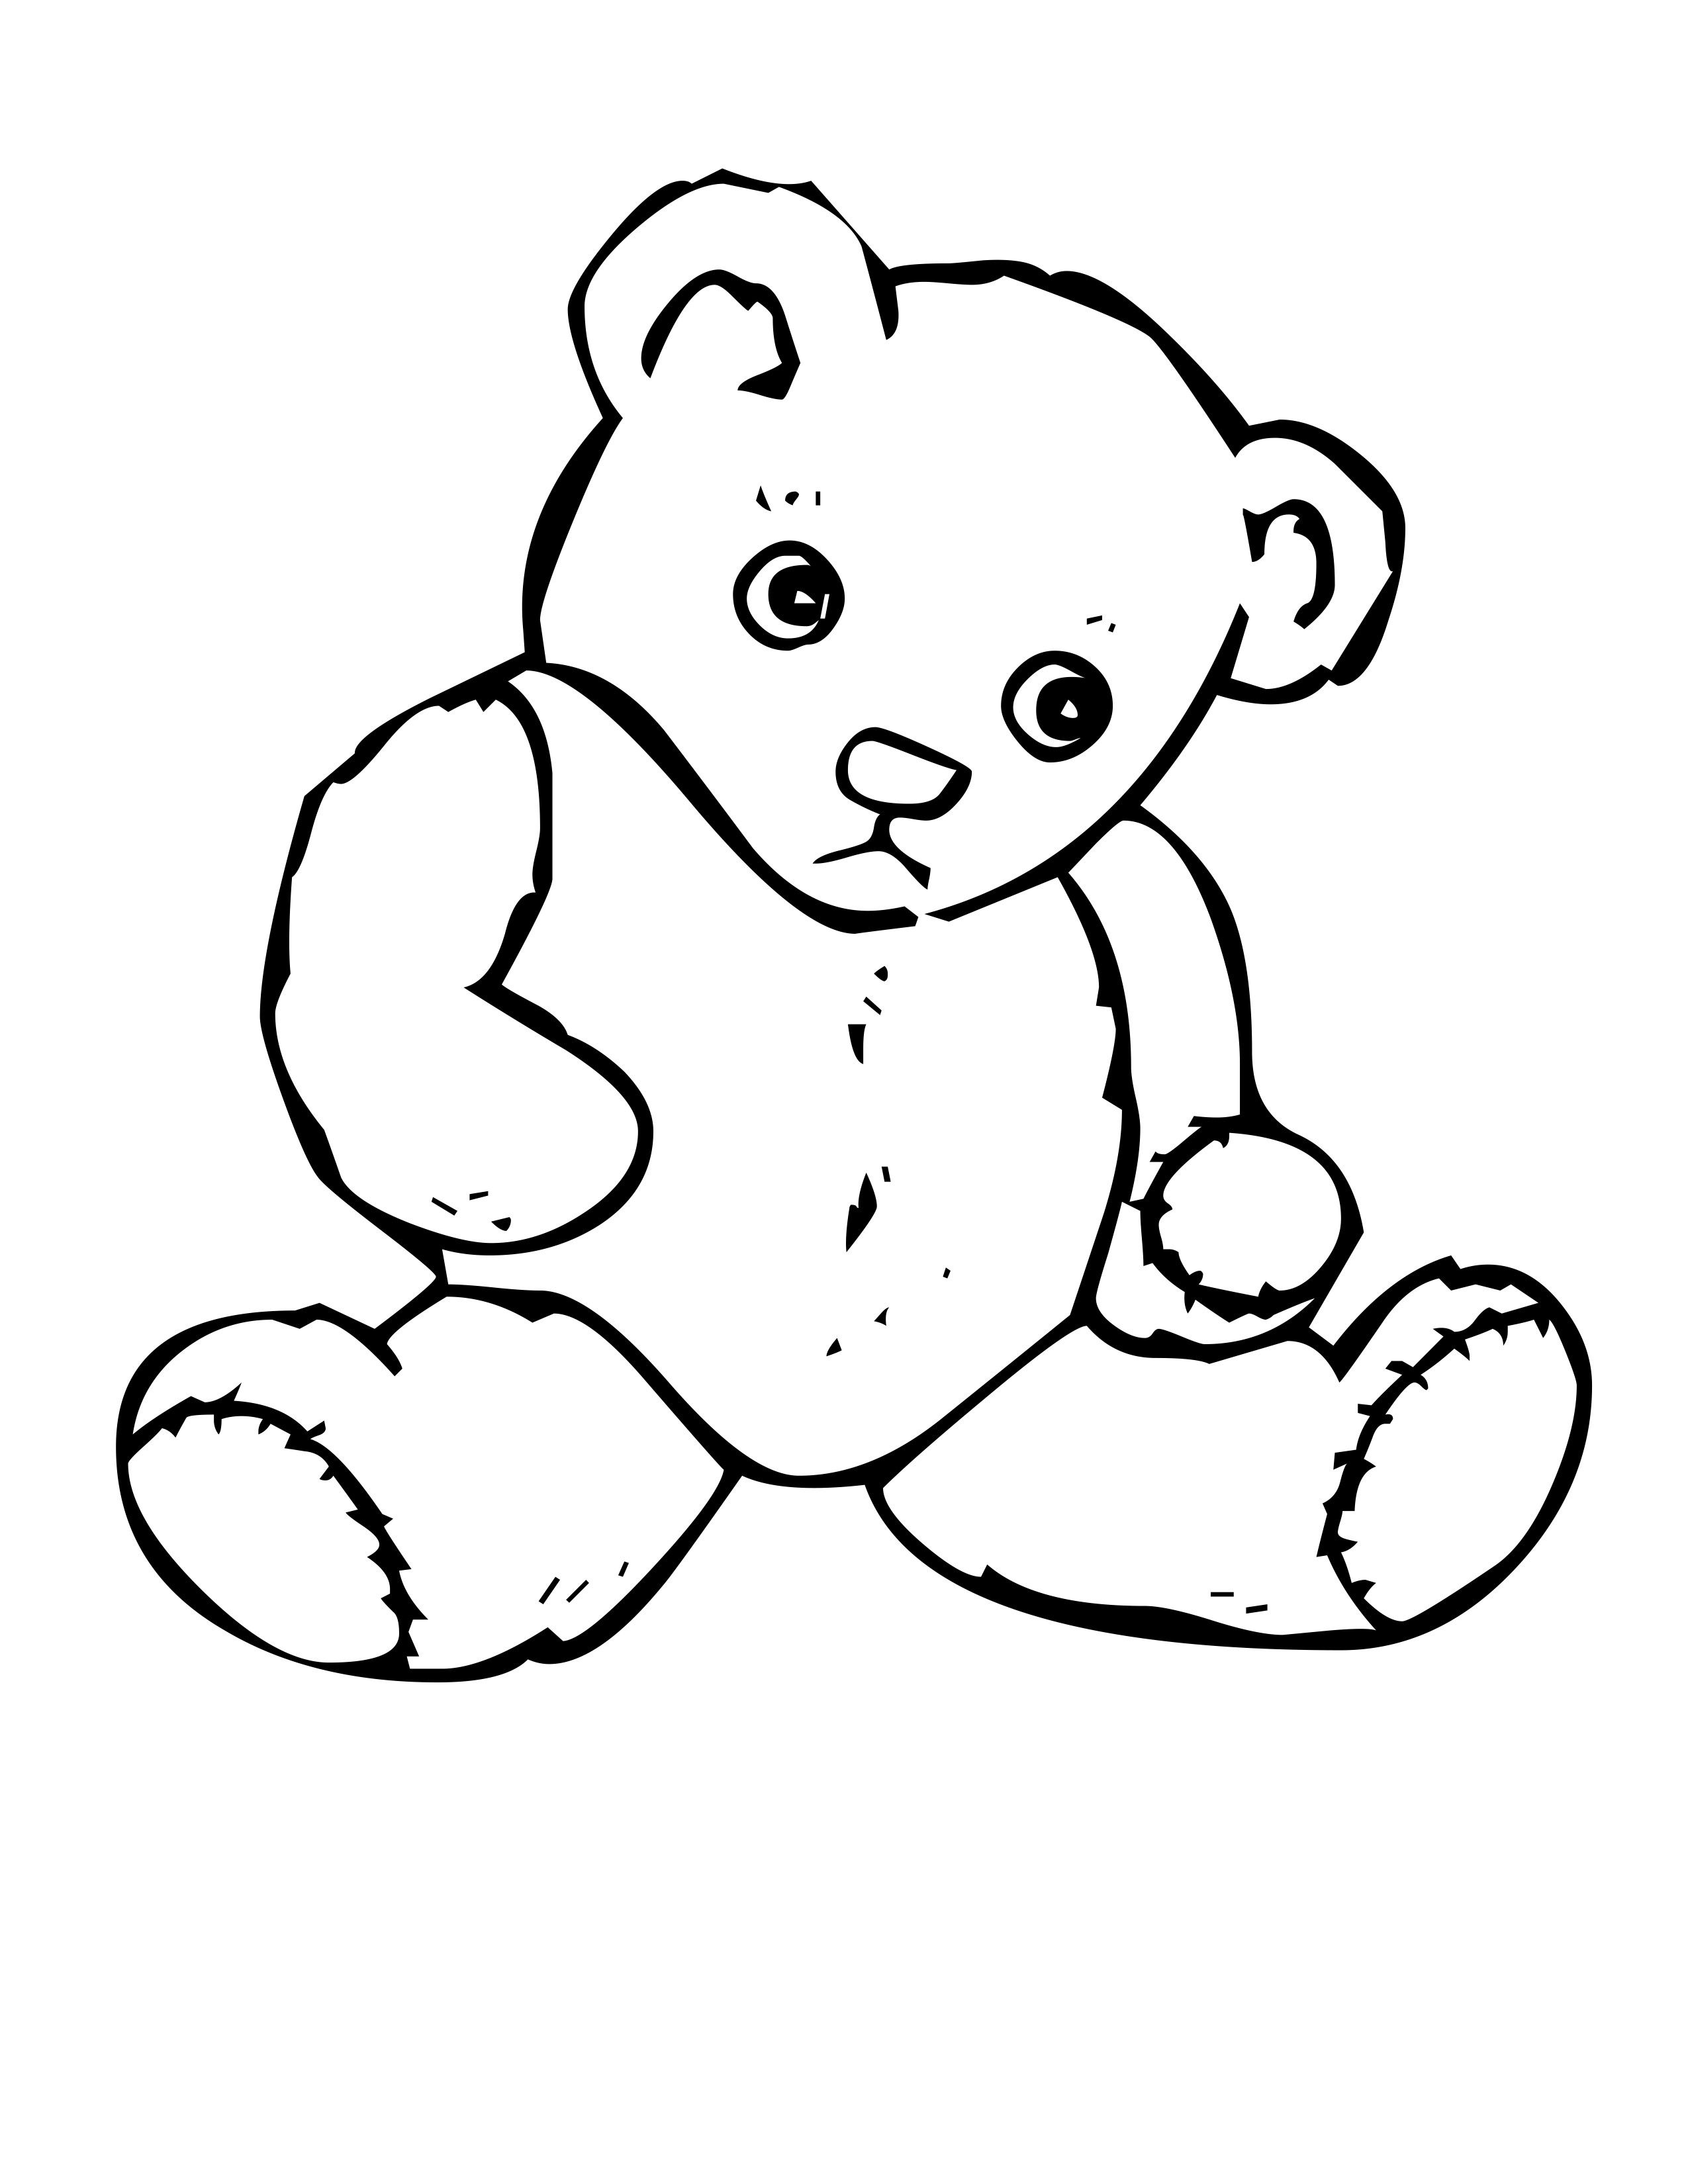 2550x3300 Soar Coloring Pages Of Teddy Bears To Print Free Printable Bear